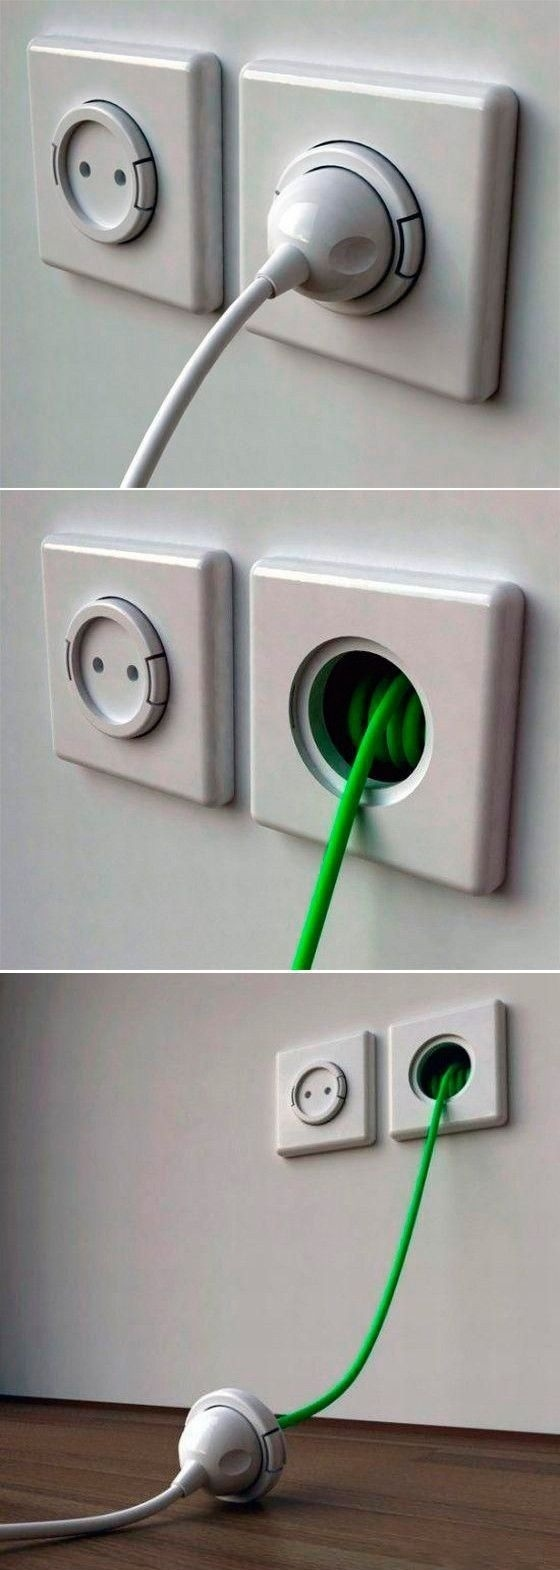 Extended Wall Socket